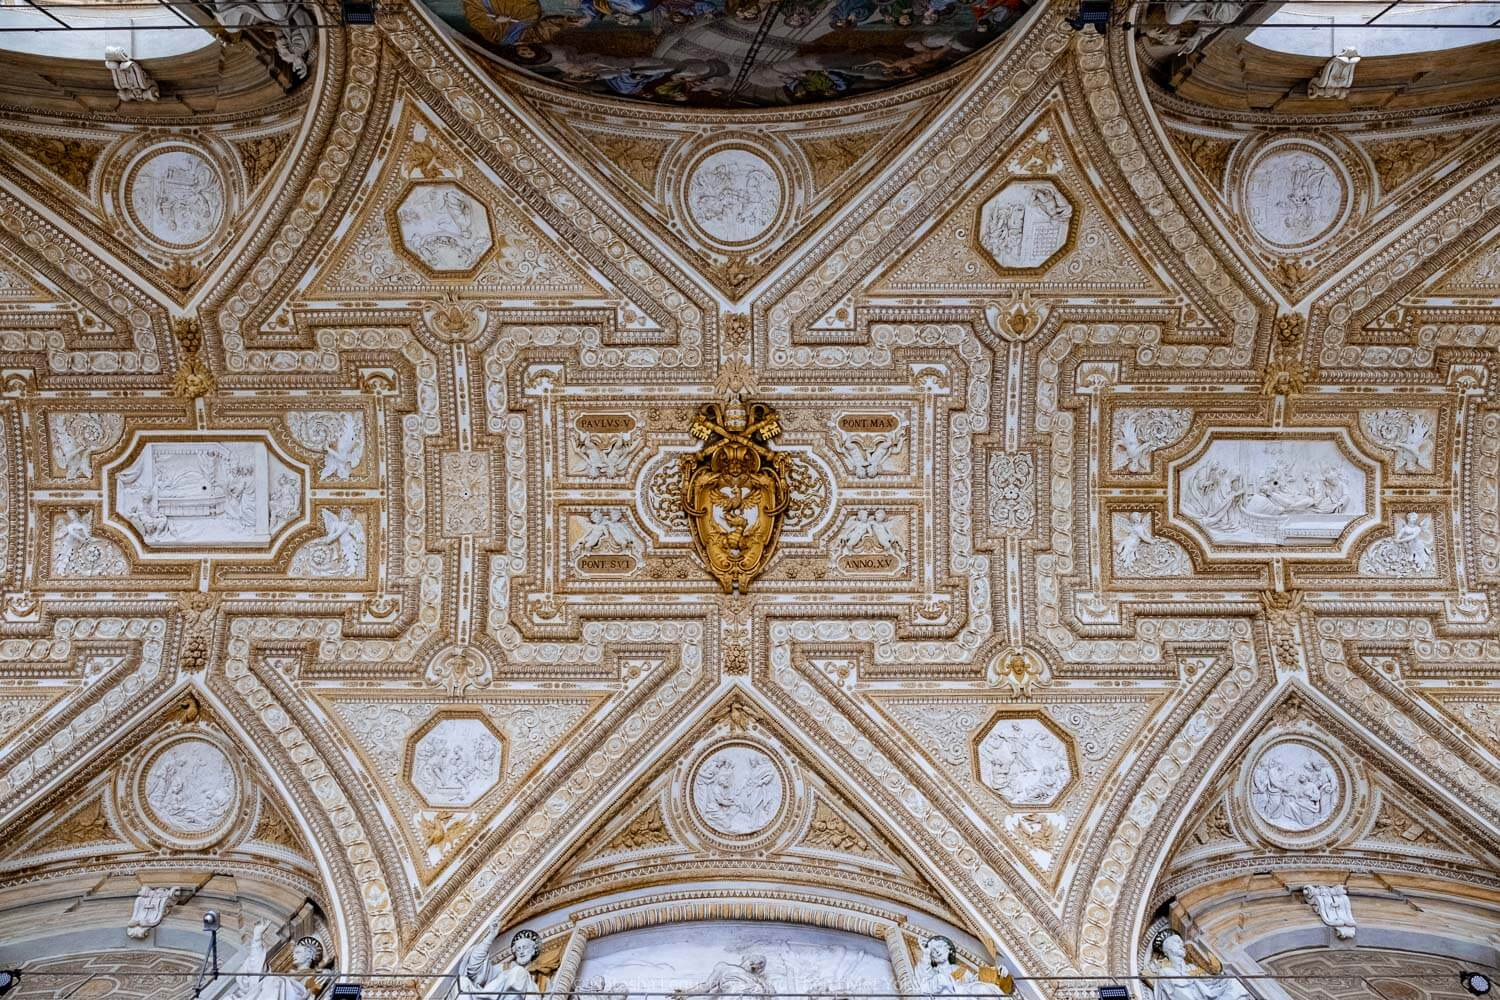 """The ceiling outside St Peter's Basilica, Vatican. Travel photography and guide by © Natasha Lequepeys for """"And Then I Met Yoko"""". #rome #italy #travelblog #travelphotography"""